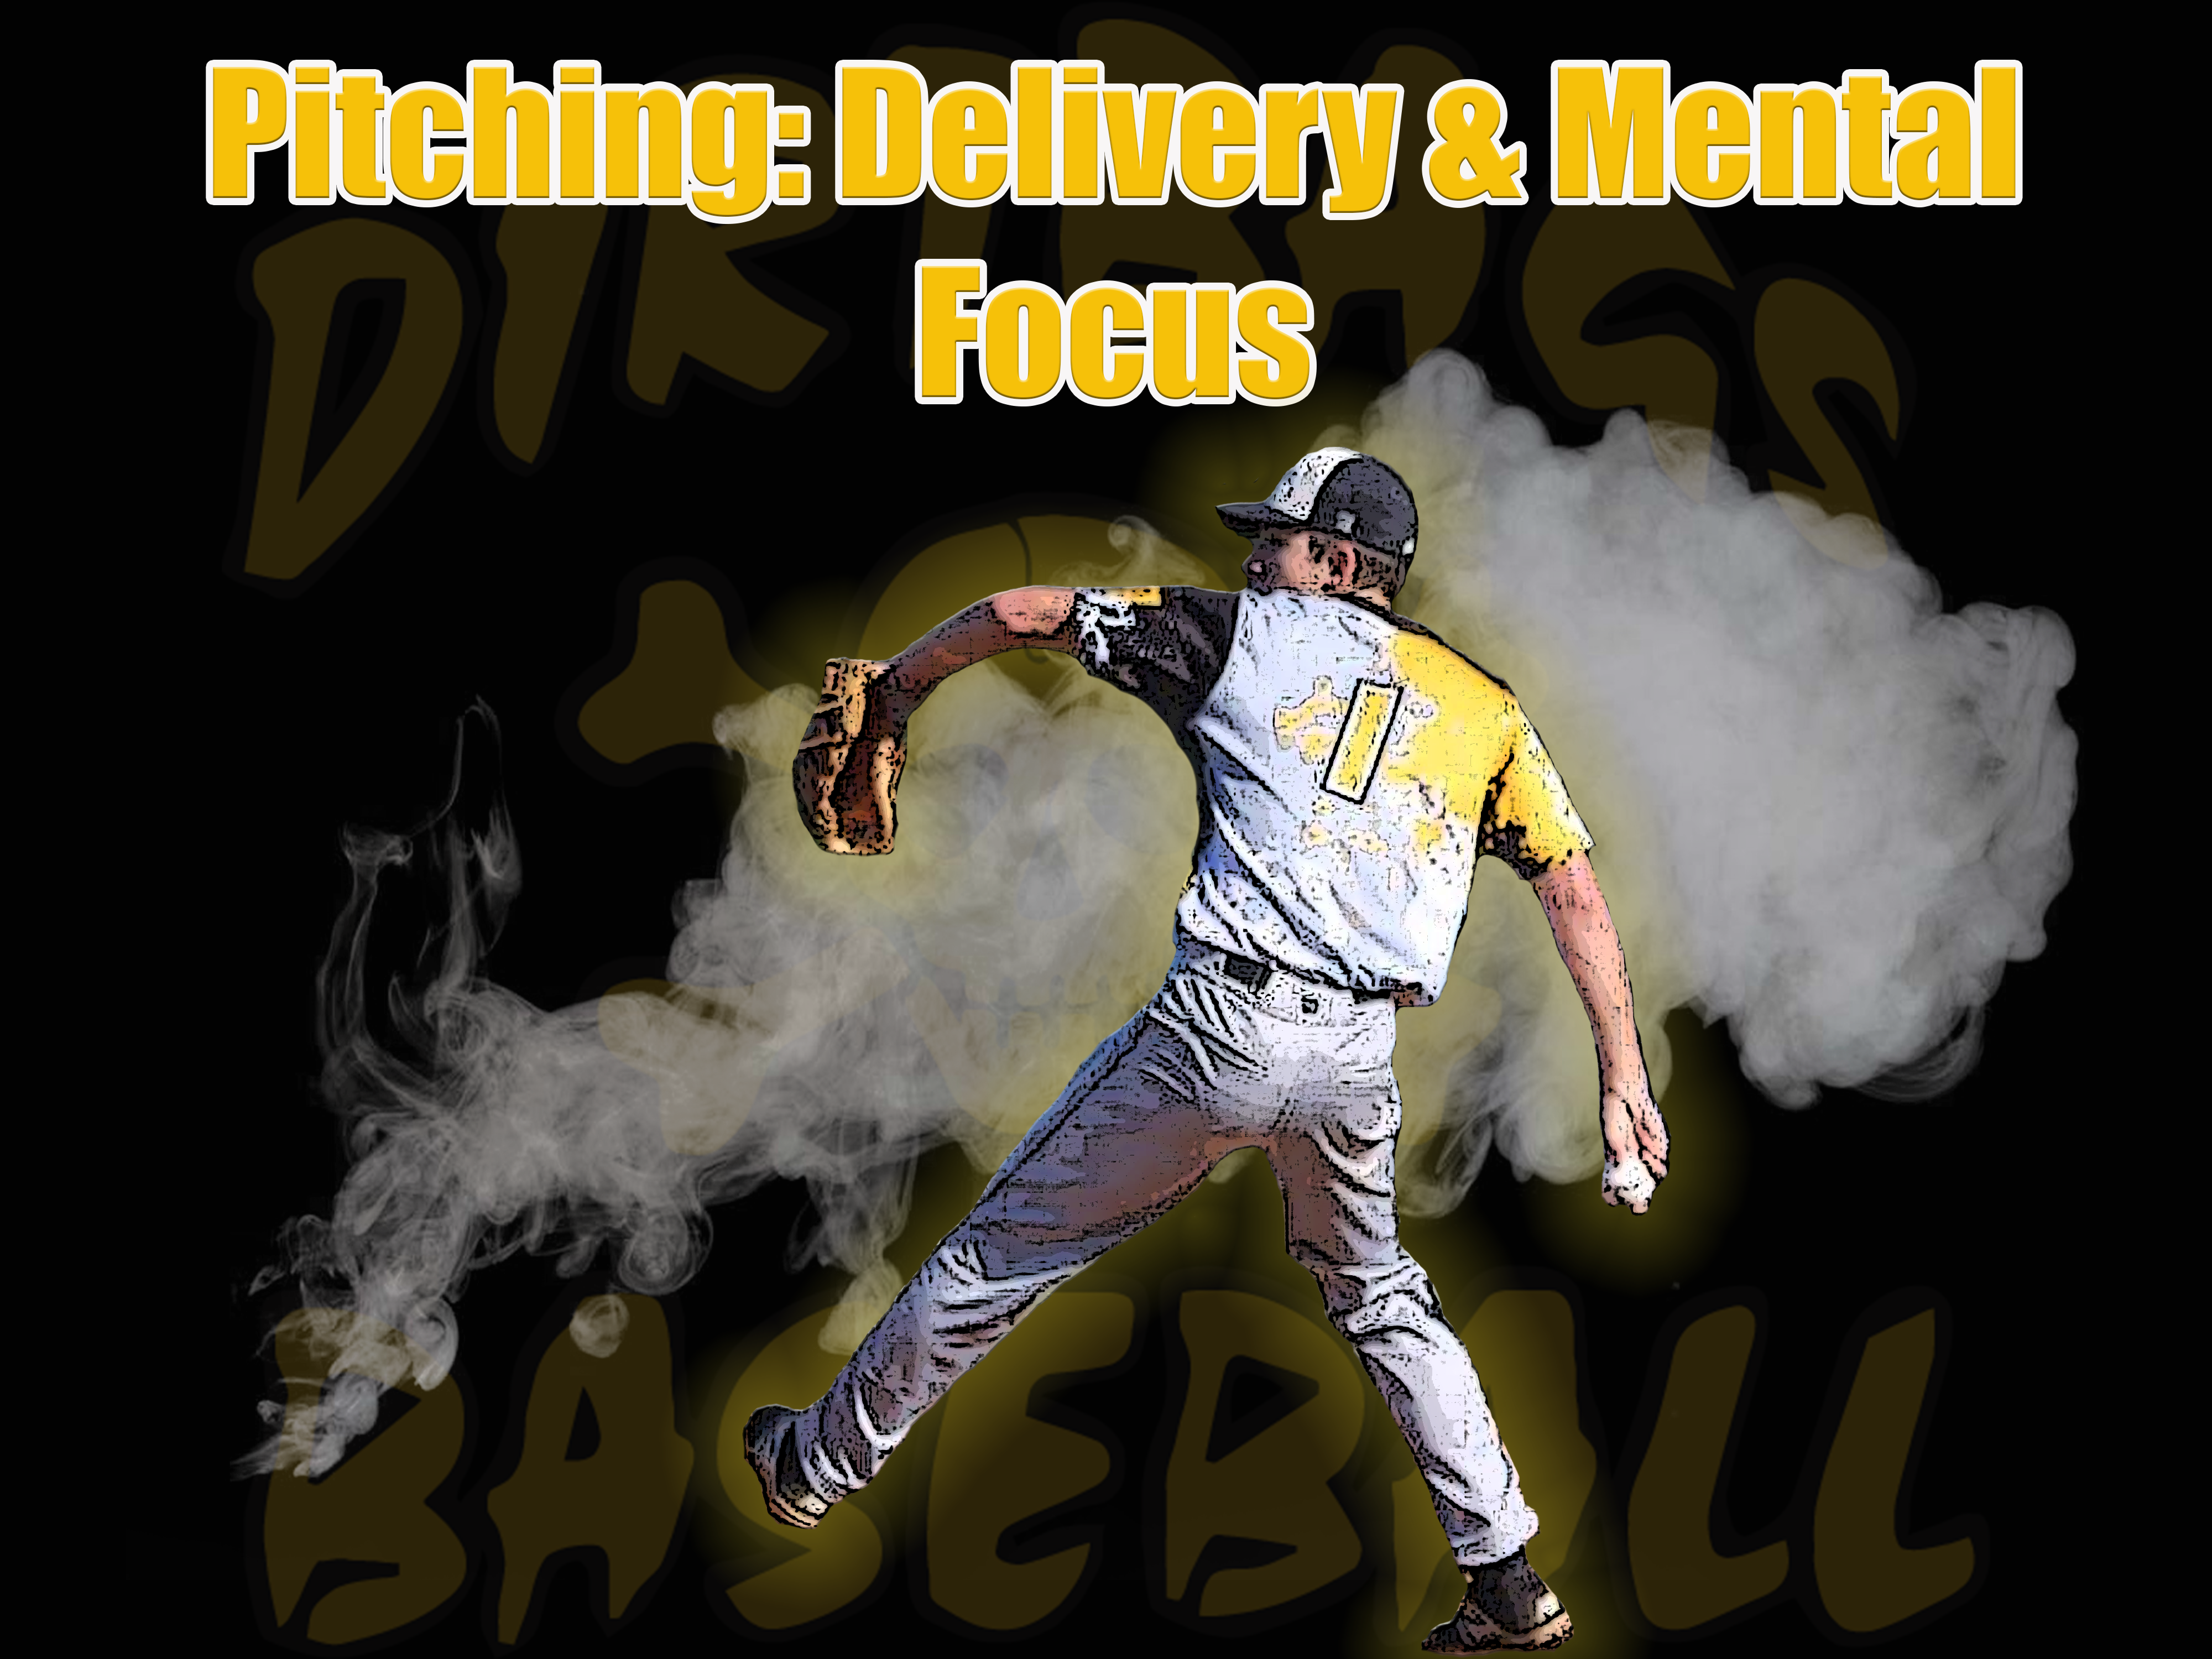 Pitching: Delivery and Mental Focus